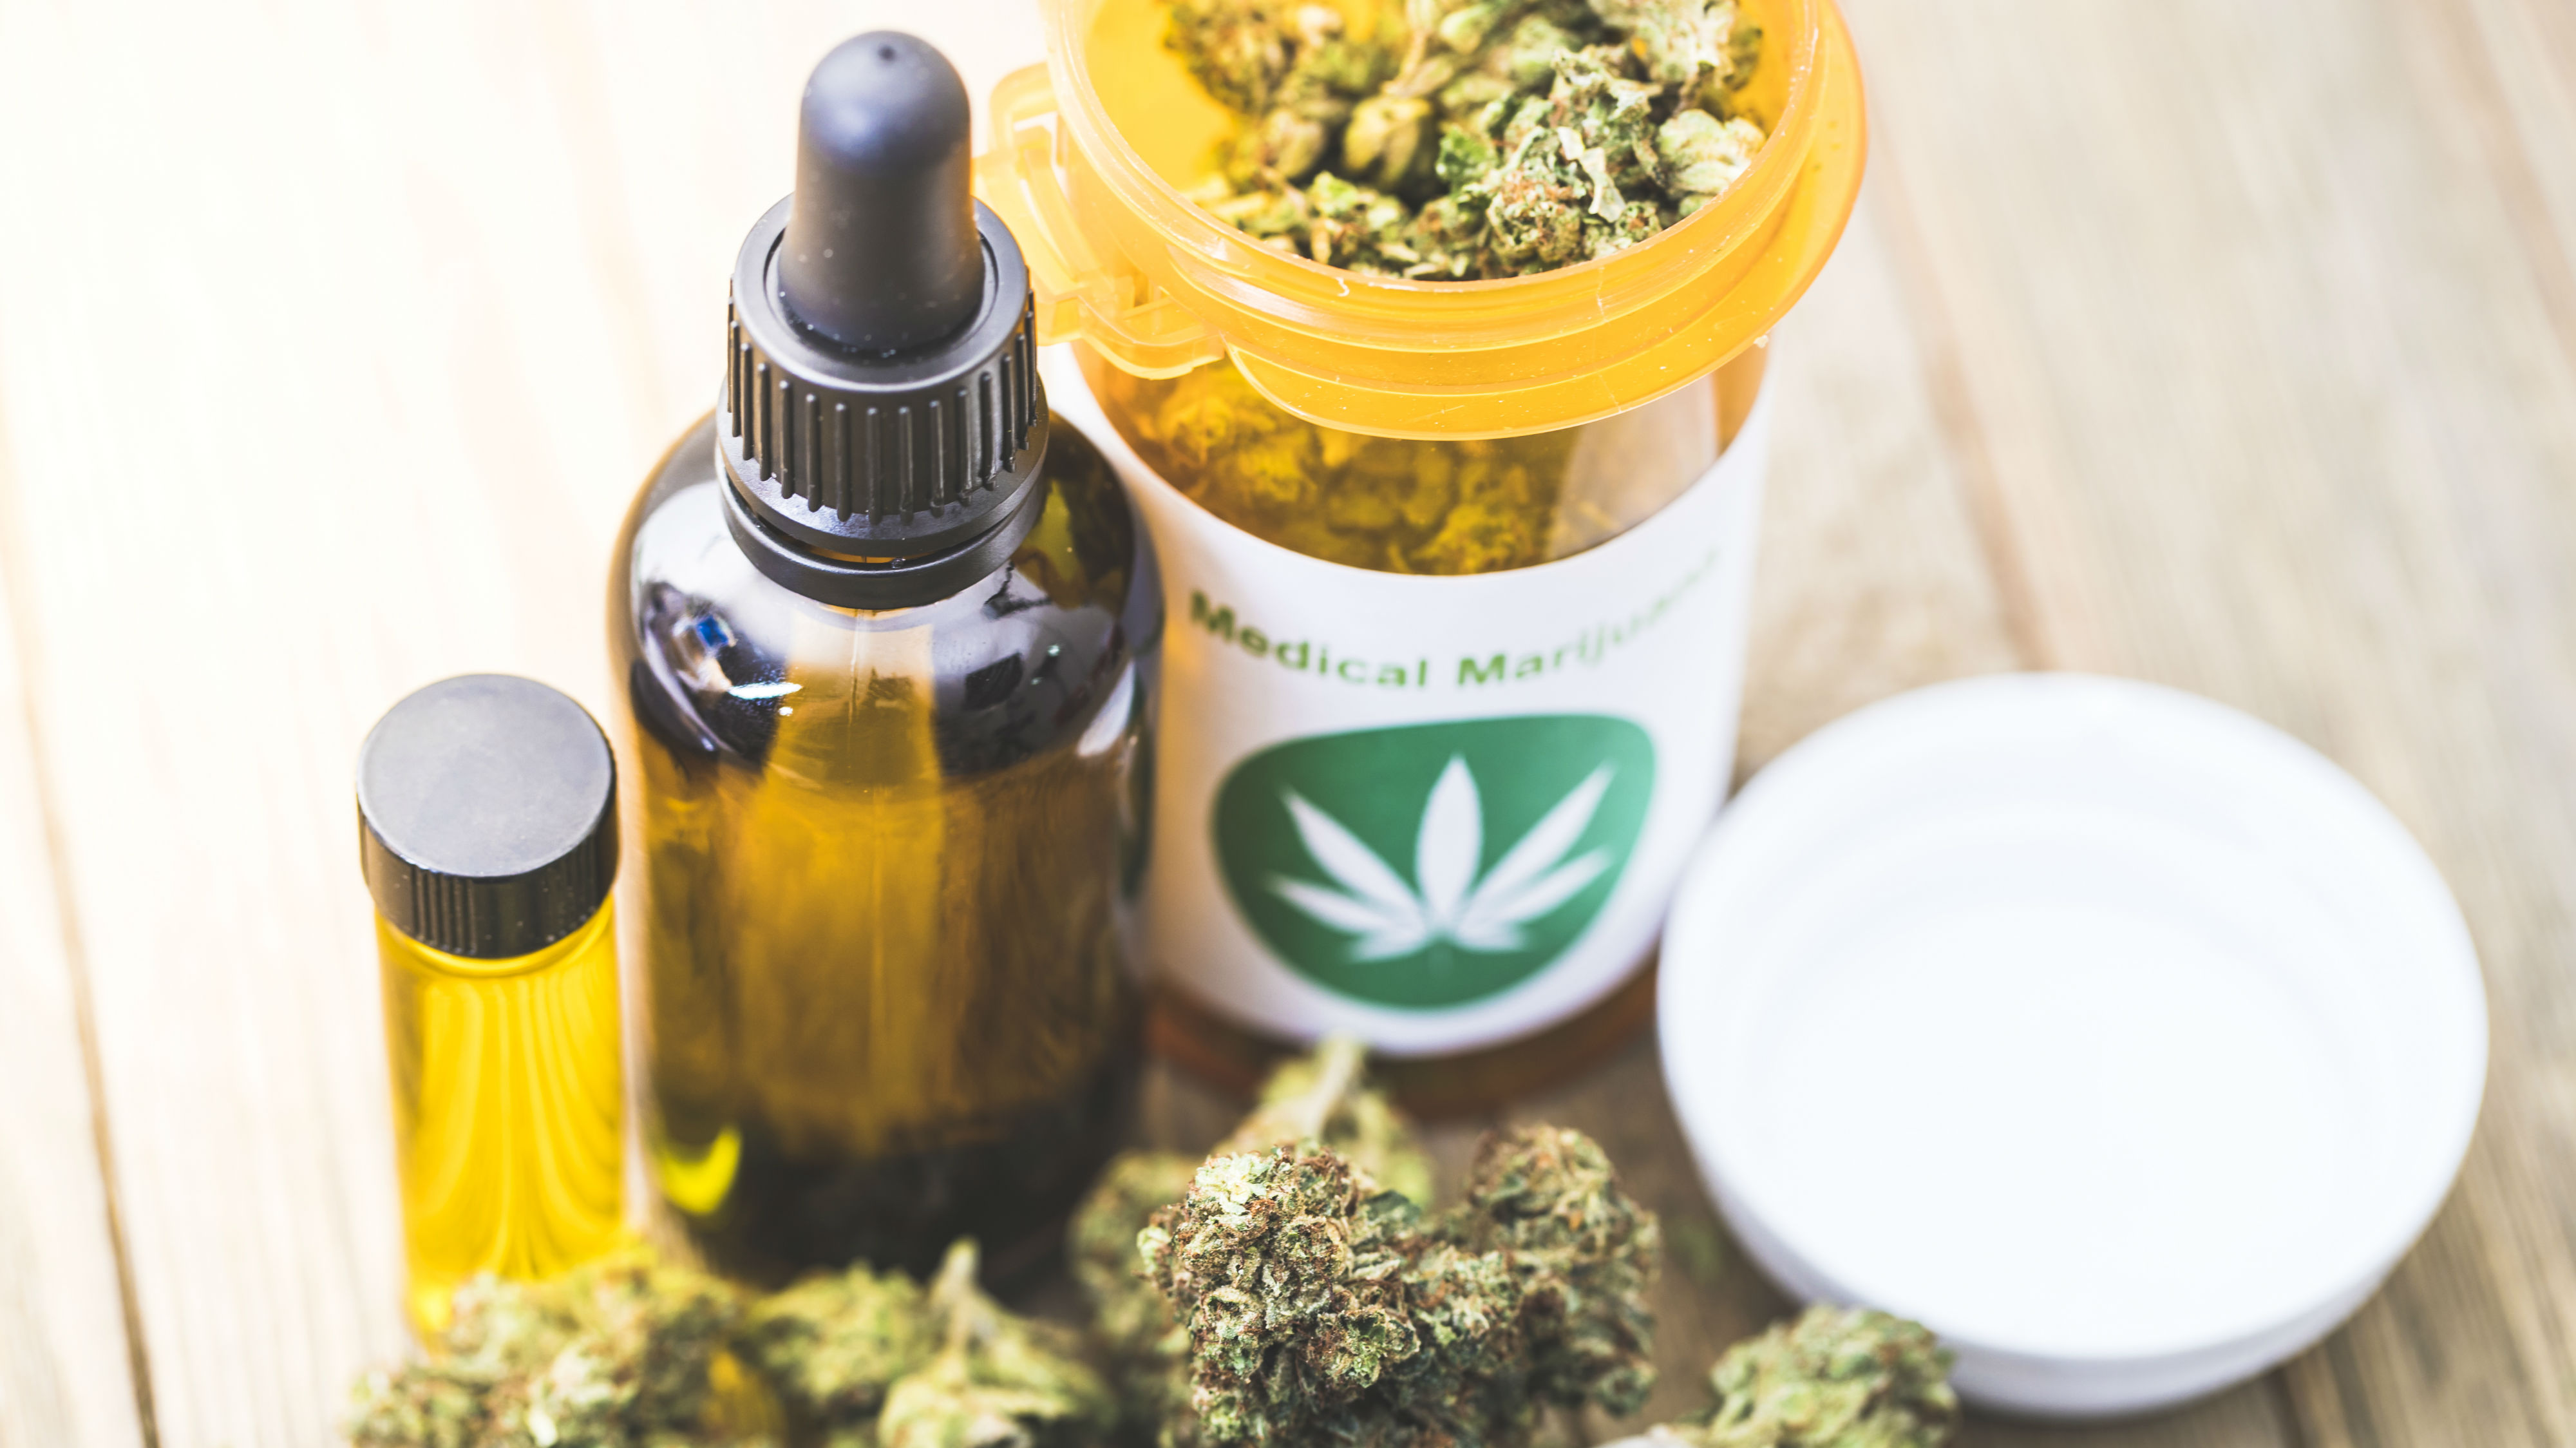 Just six per cent of doctors say they feel 'very informed' about medicinal cannabis products. Photo / Getty Images.